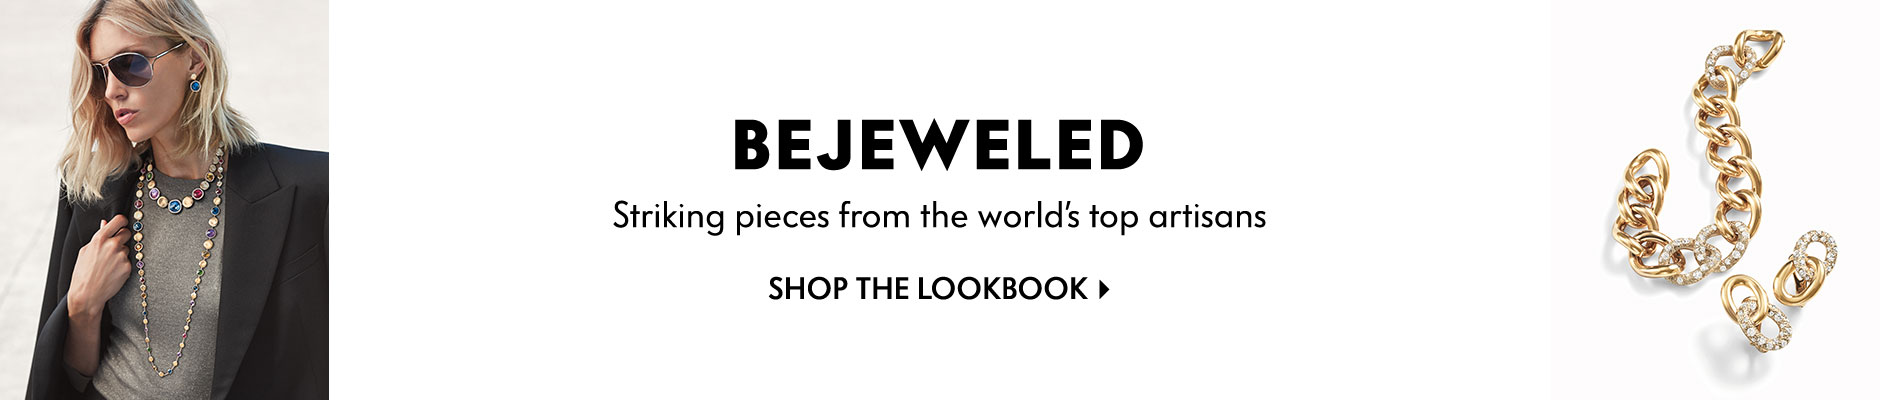 Bejeweled Precious Jewelry Lookbook